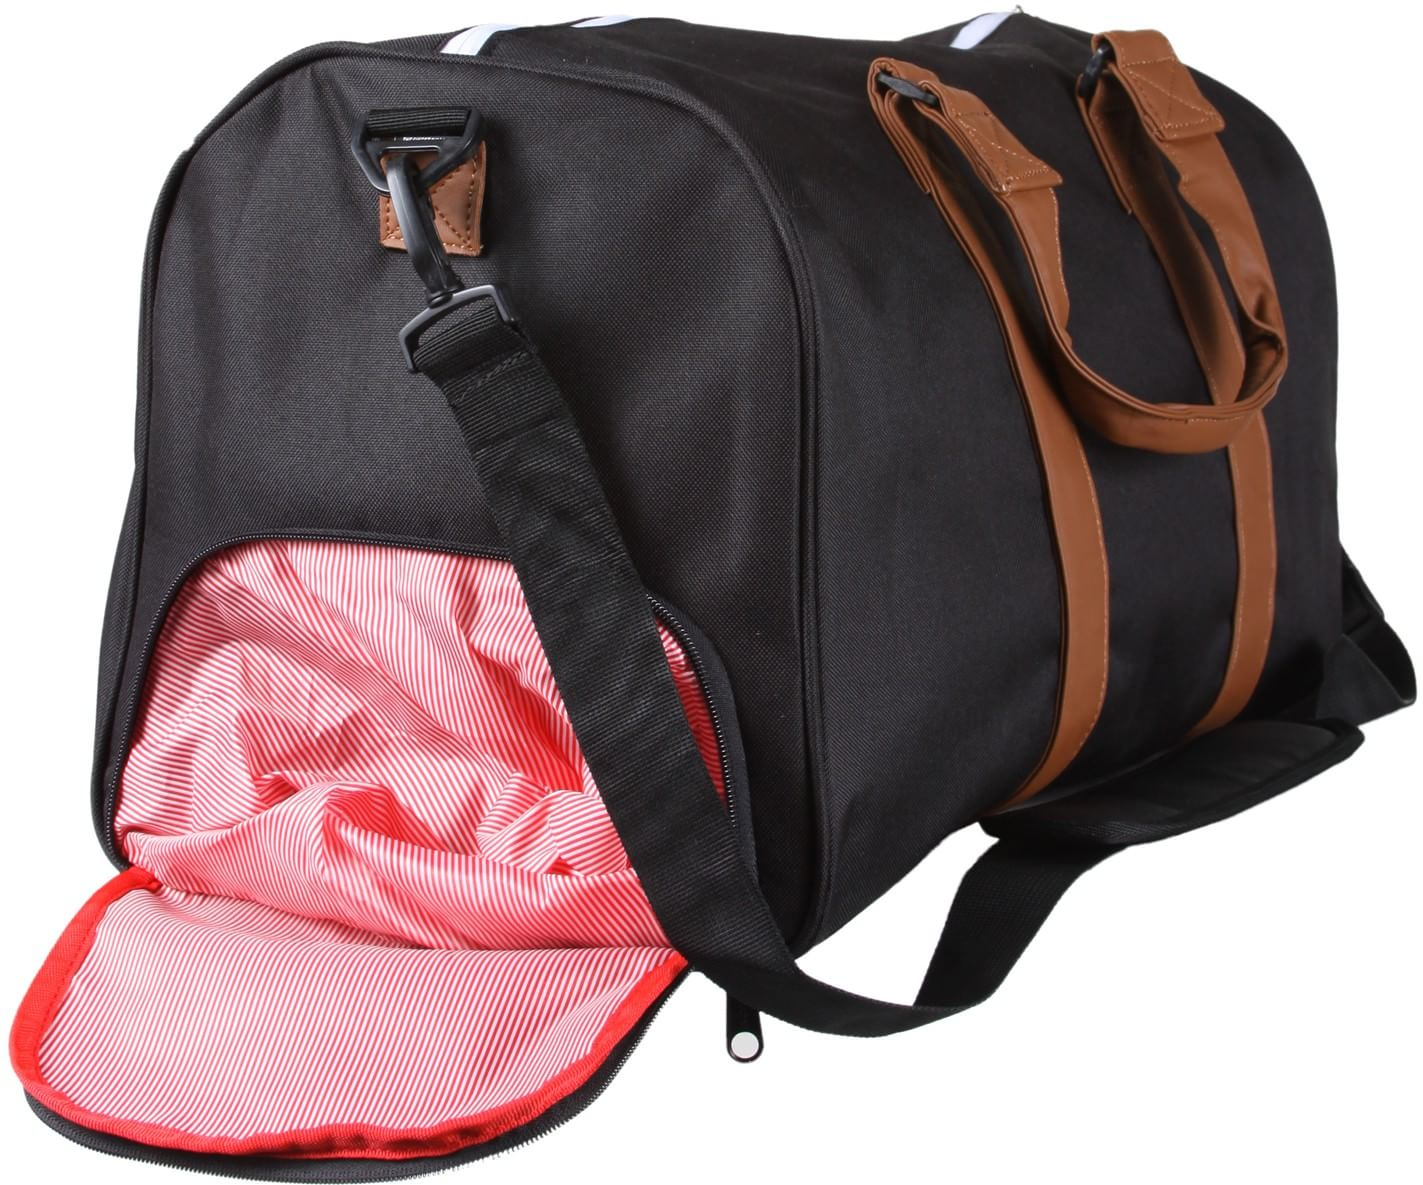 Herschel Weekender Bag | Herschel Supply Co Packable Duffle Bag | Herschel Duffle Bag